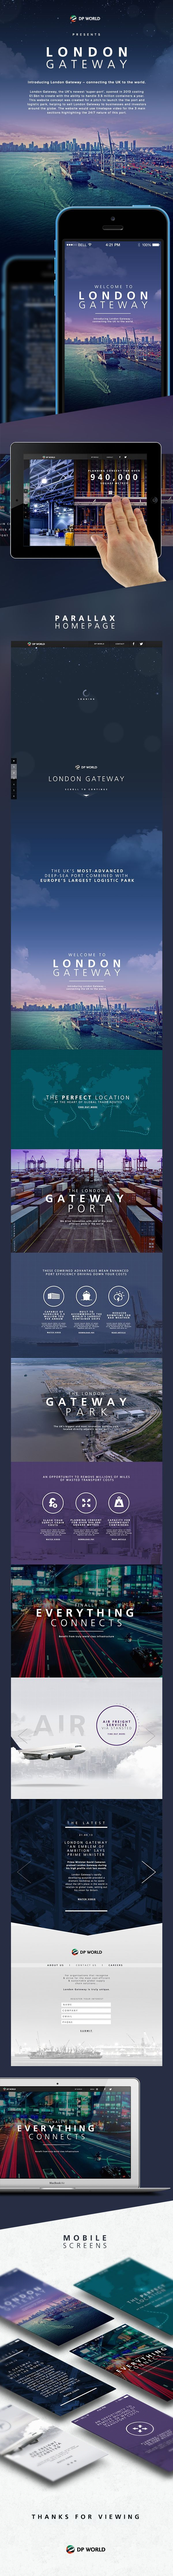 Design Journal London Gateway